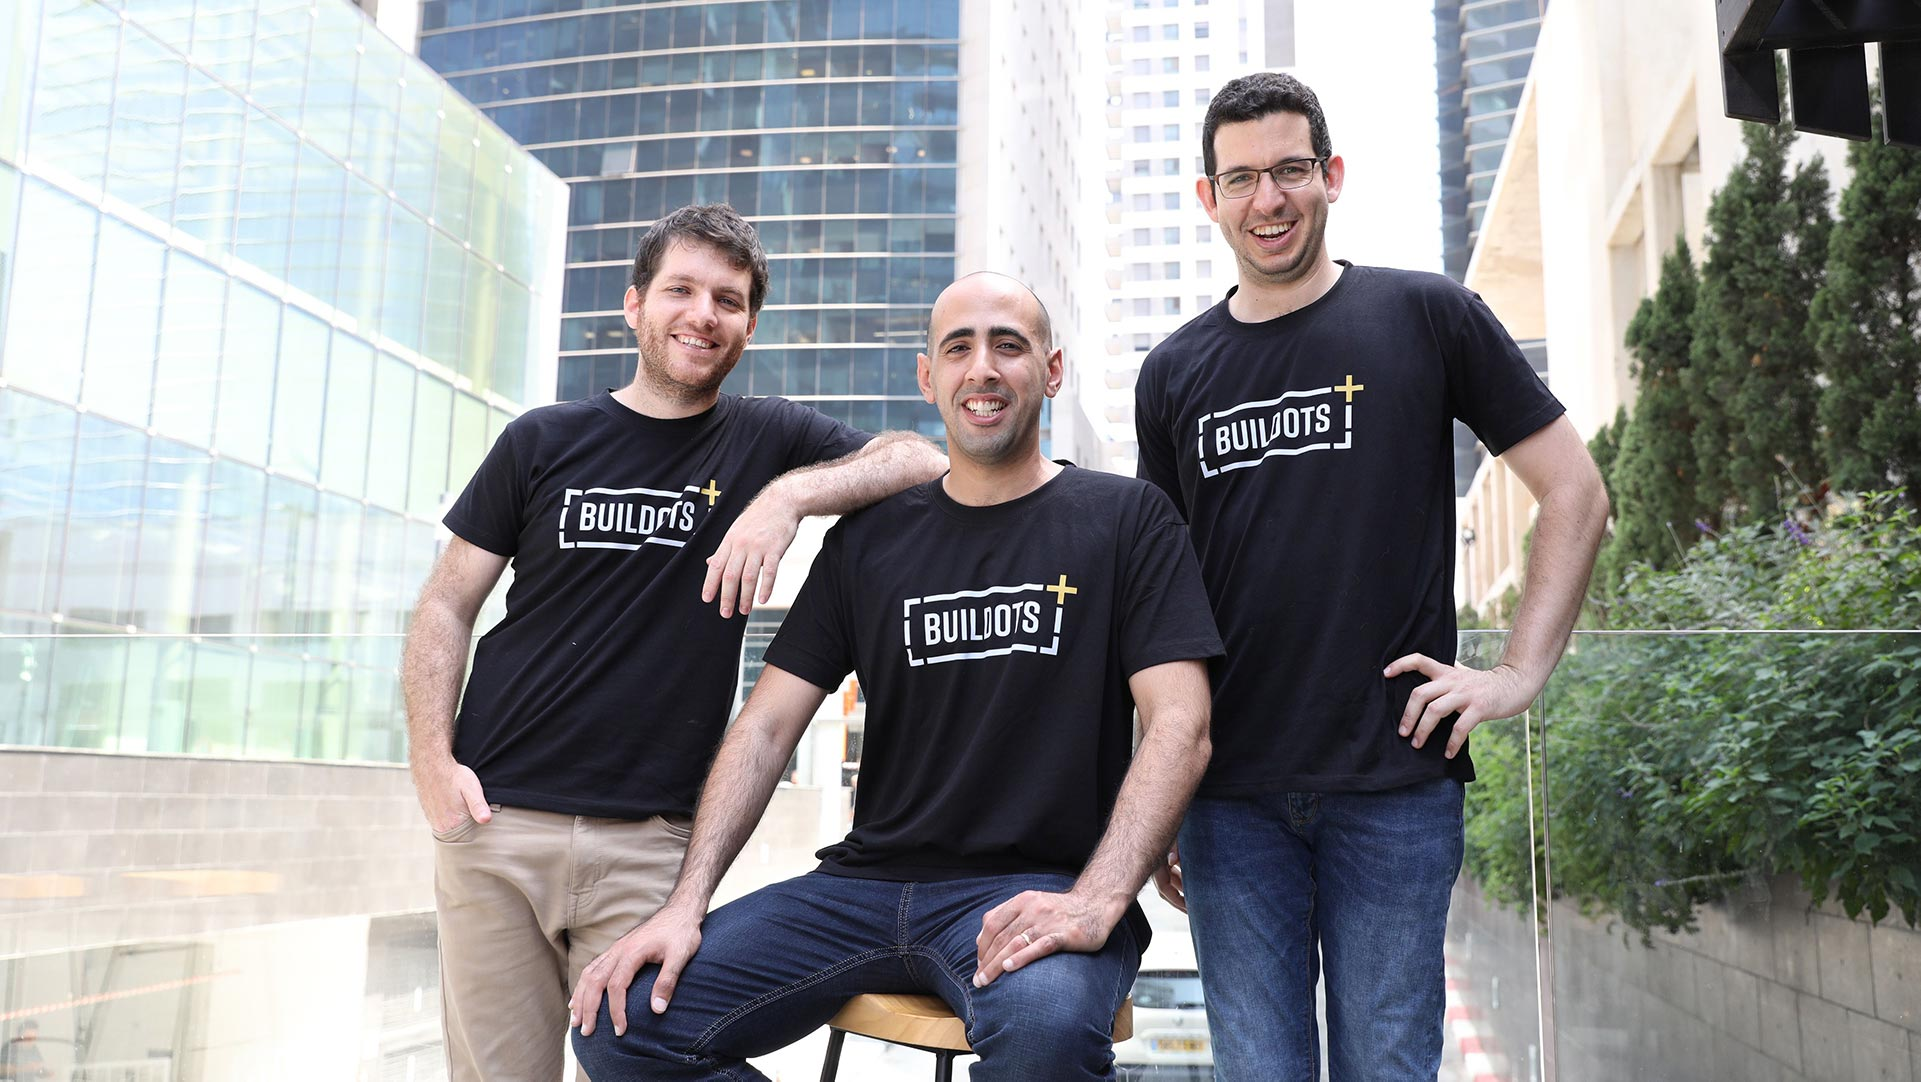 Buildots Founders